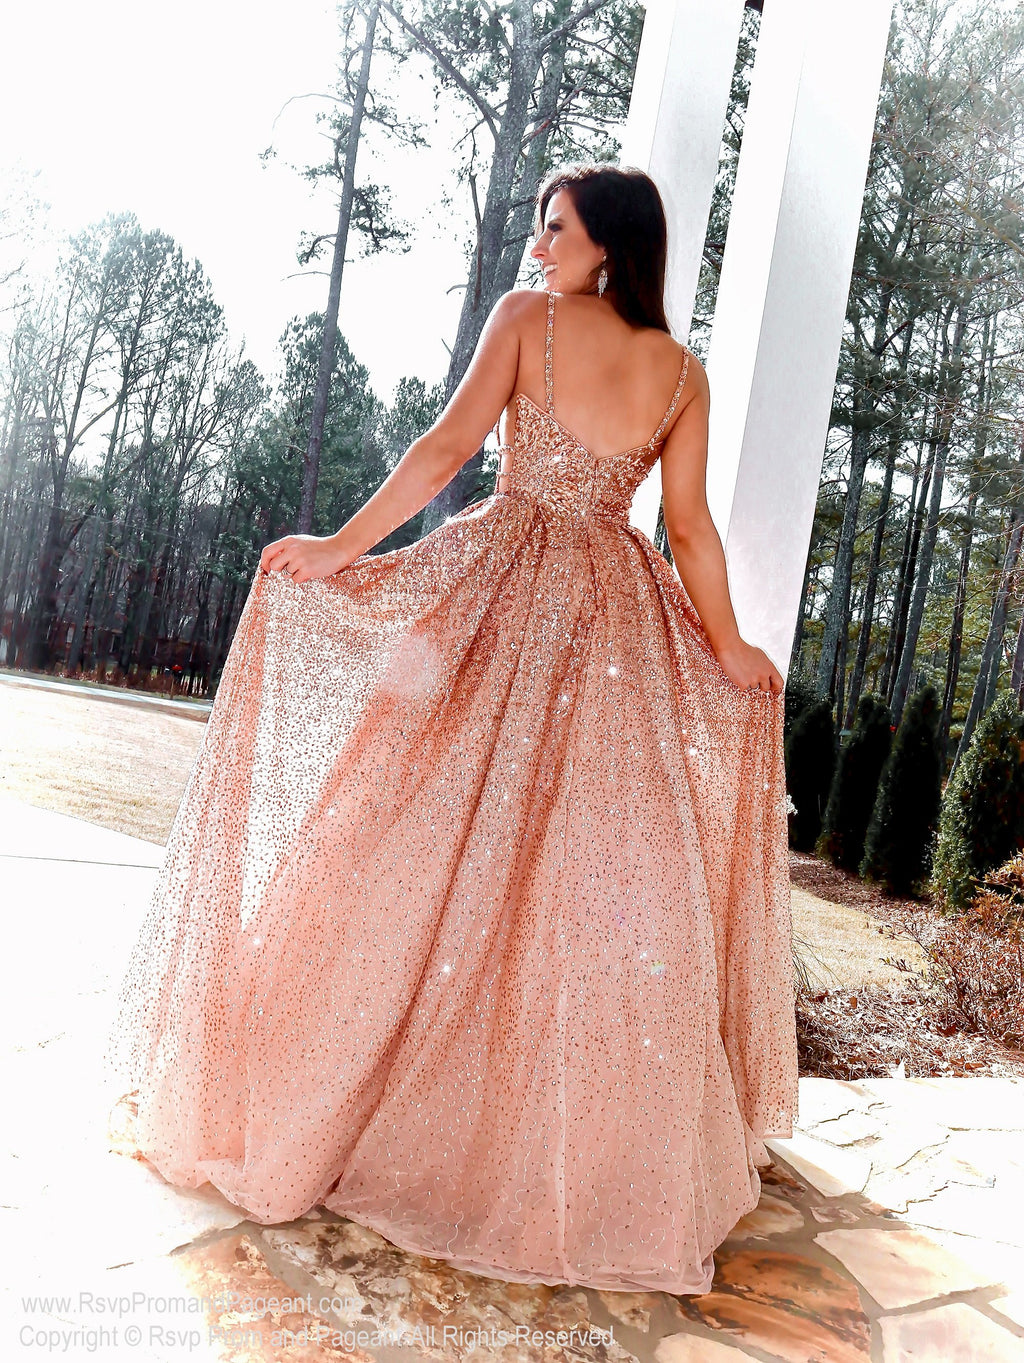 Back of Model in this Rose Gold ball gown which is the definition of Prom Heaven!! The ombre sequins, open sides, sparkling beading, and beautiful color will have you beaming all night!  And it's at Rsvp Prom and Pageant, your source for the HOTTEST prom and pageant dresses and Exclusive Evening Gowns and located in Atlanta, Georgia!